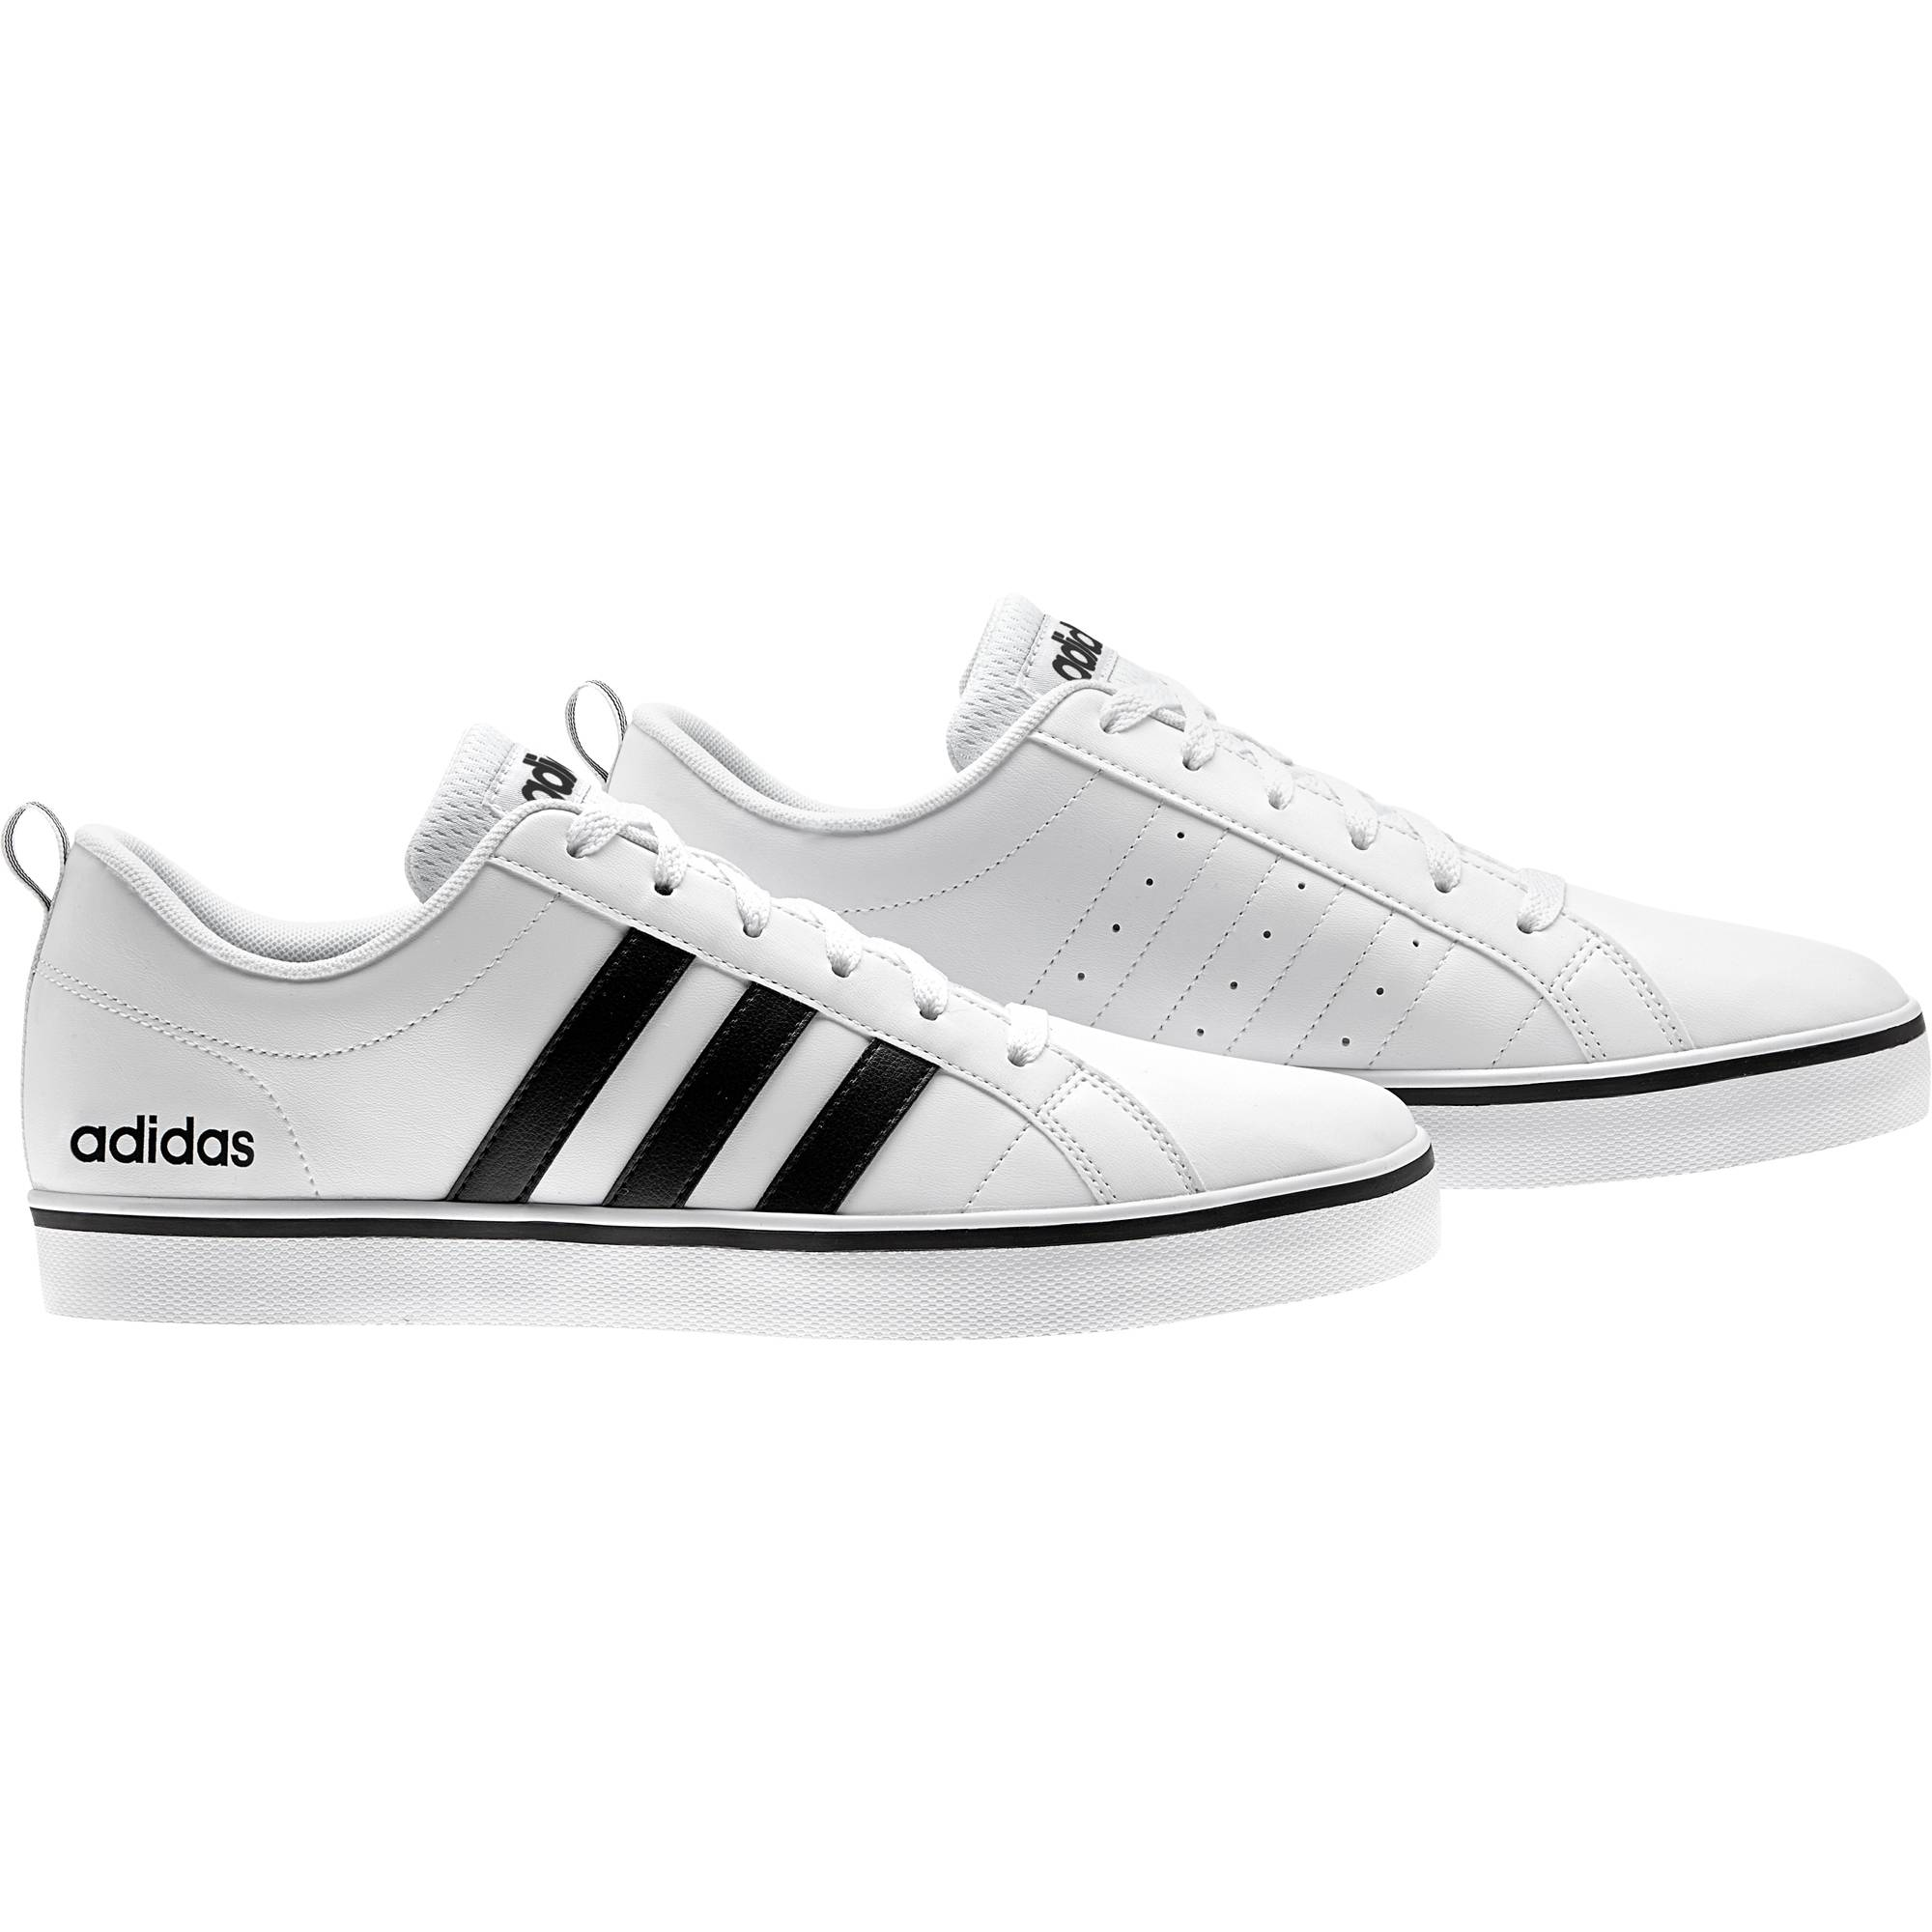 official photos 98409 34c85 ADIDAS NEO MEN ESSENTIALS VS PACE SHOES AW4594  San Siro Sports  Casual